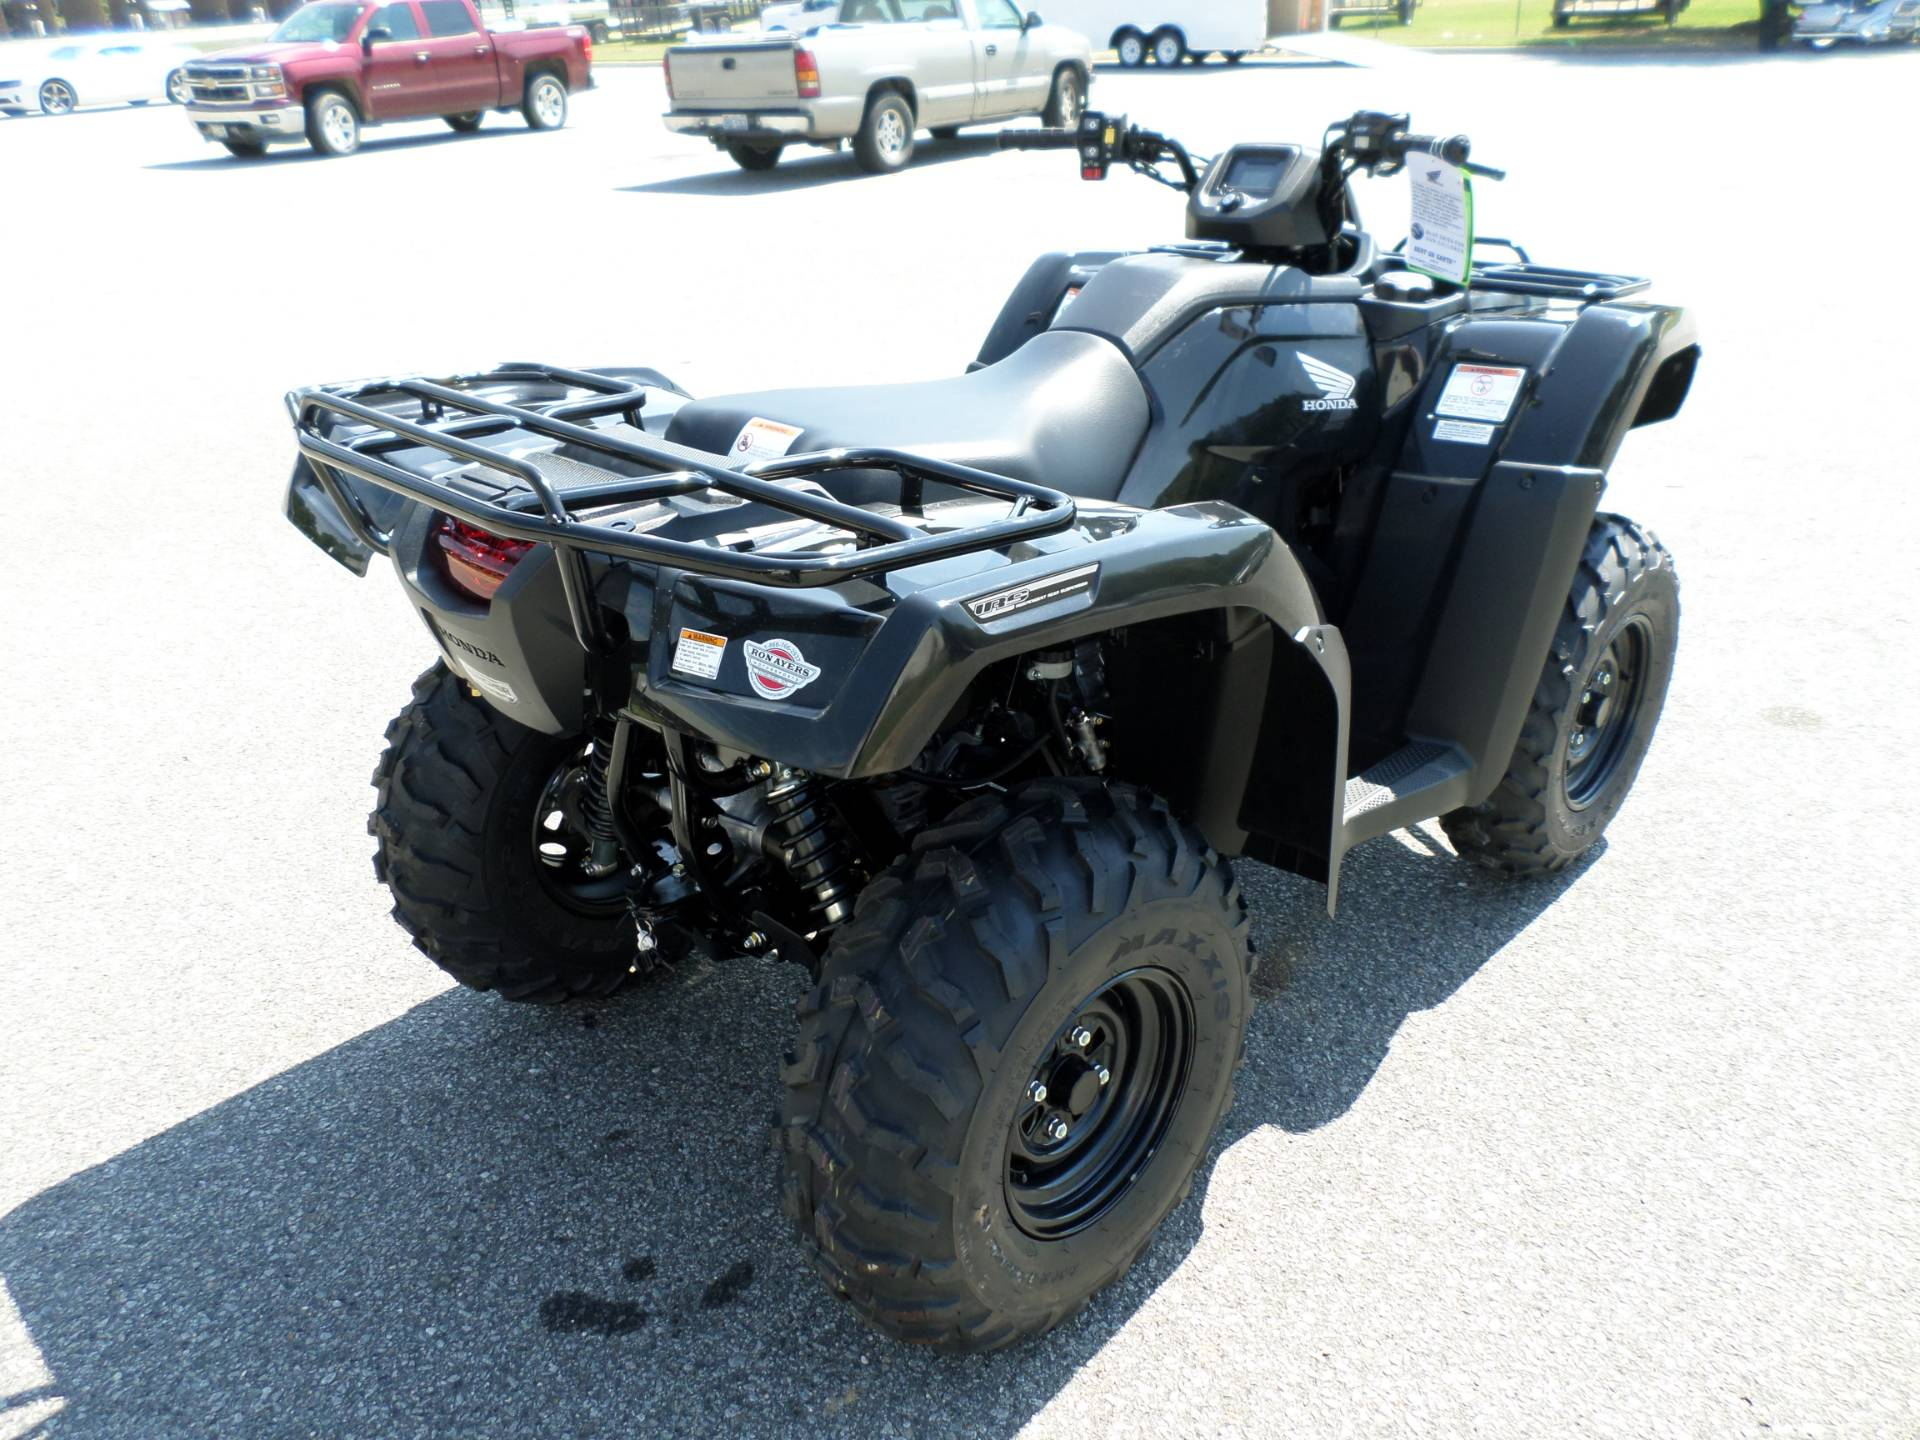 Honda Atvs For Sale Raleigh Nc >> Raleigh Durham New Used Boats Motorcycles For Sale .html | Autos Weblog